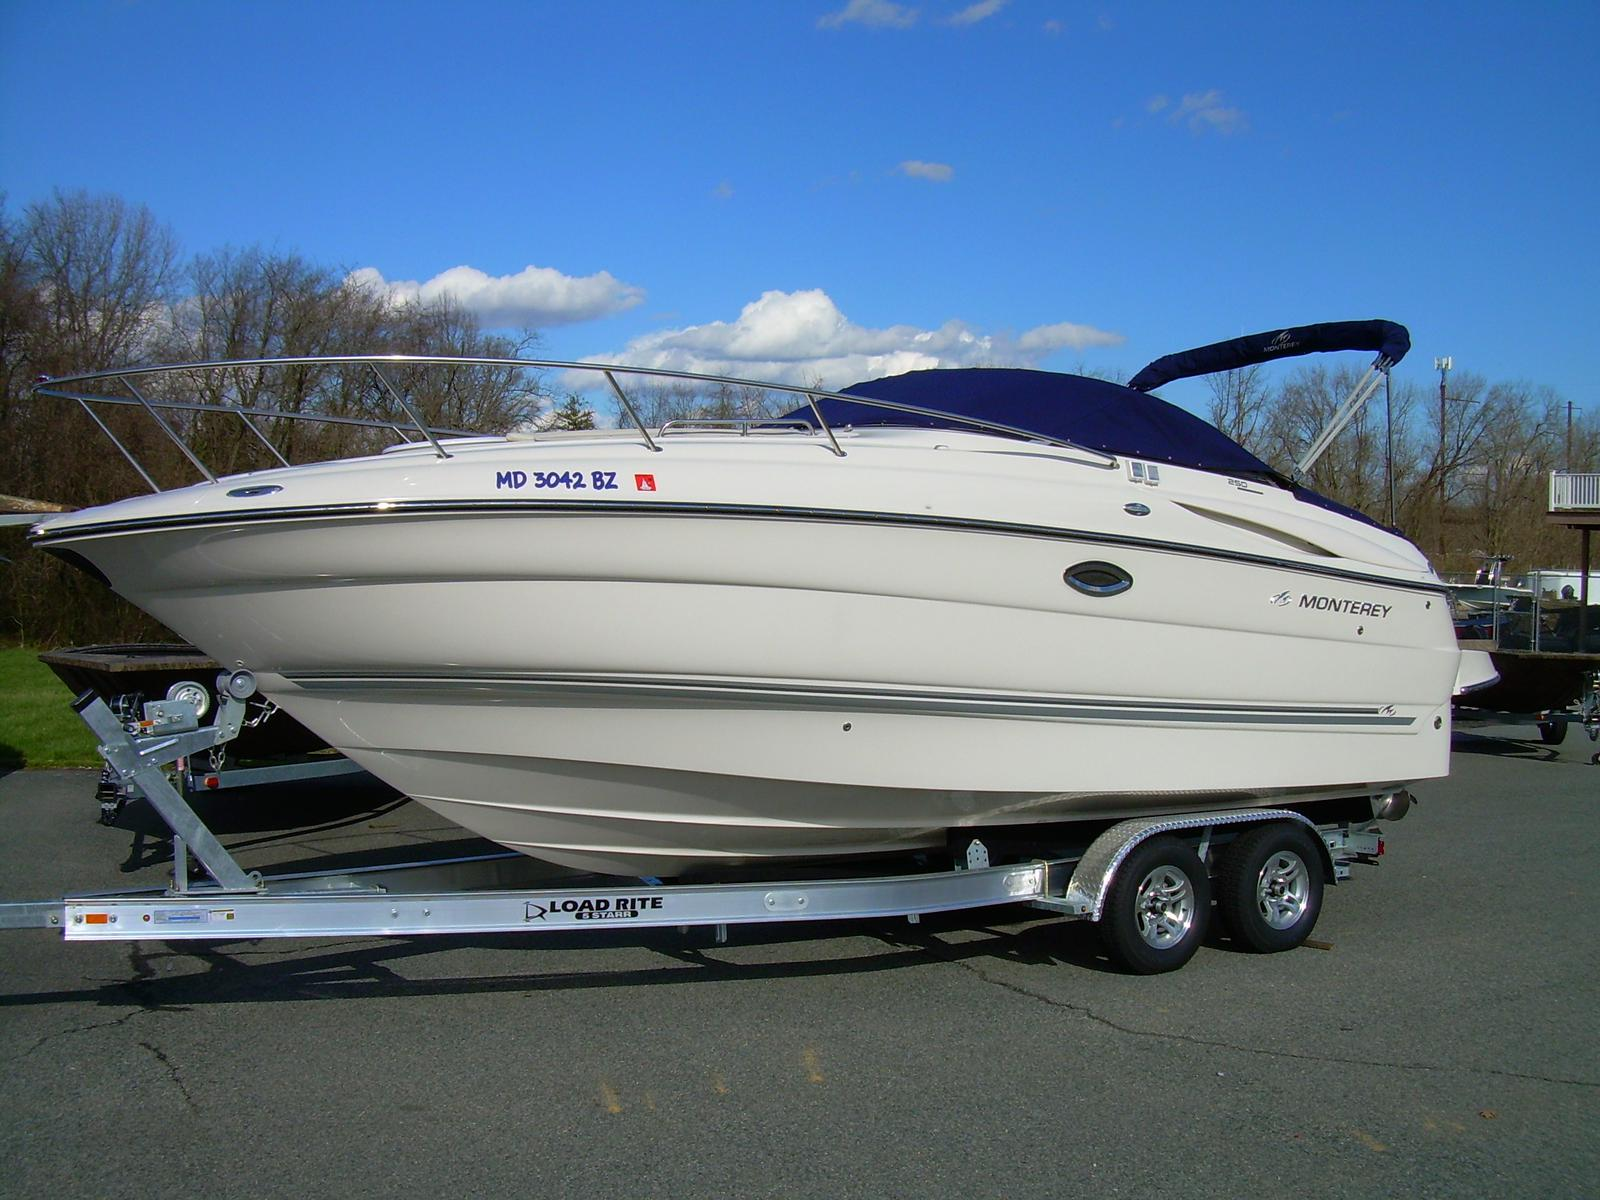 Craigslist southern maryland boats for sale